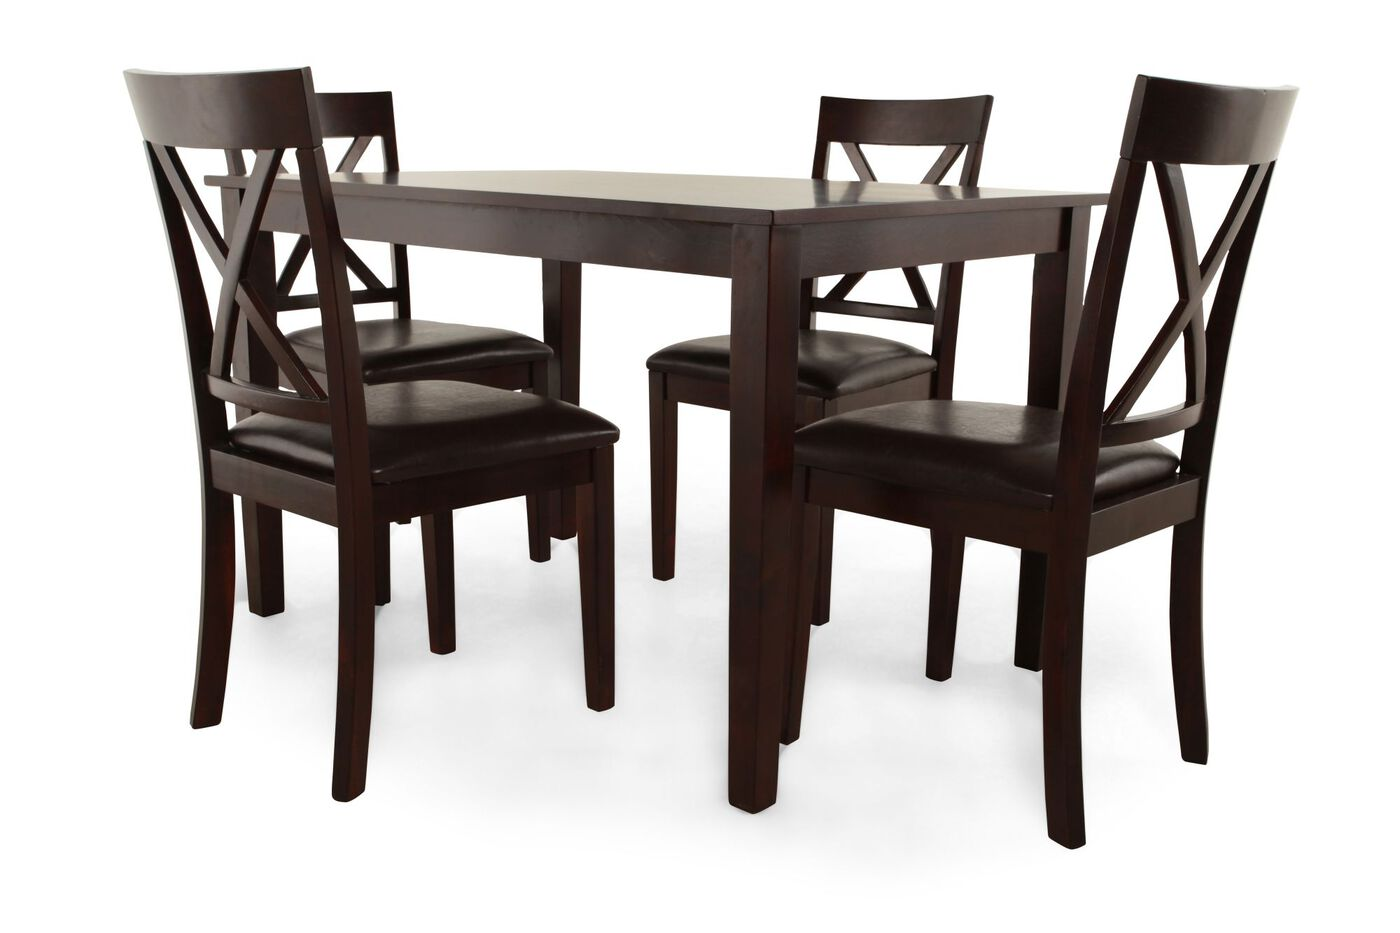 5 Piece Espresso Dining Set By MB Home Mathis Brothers